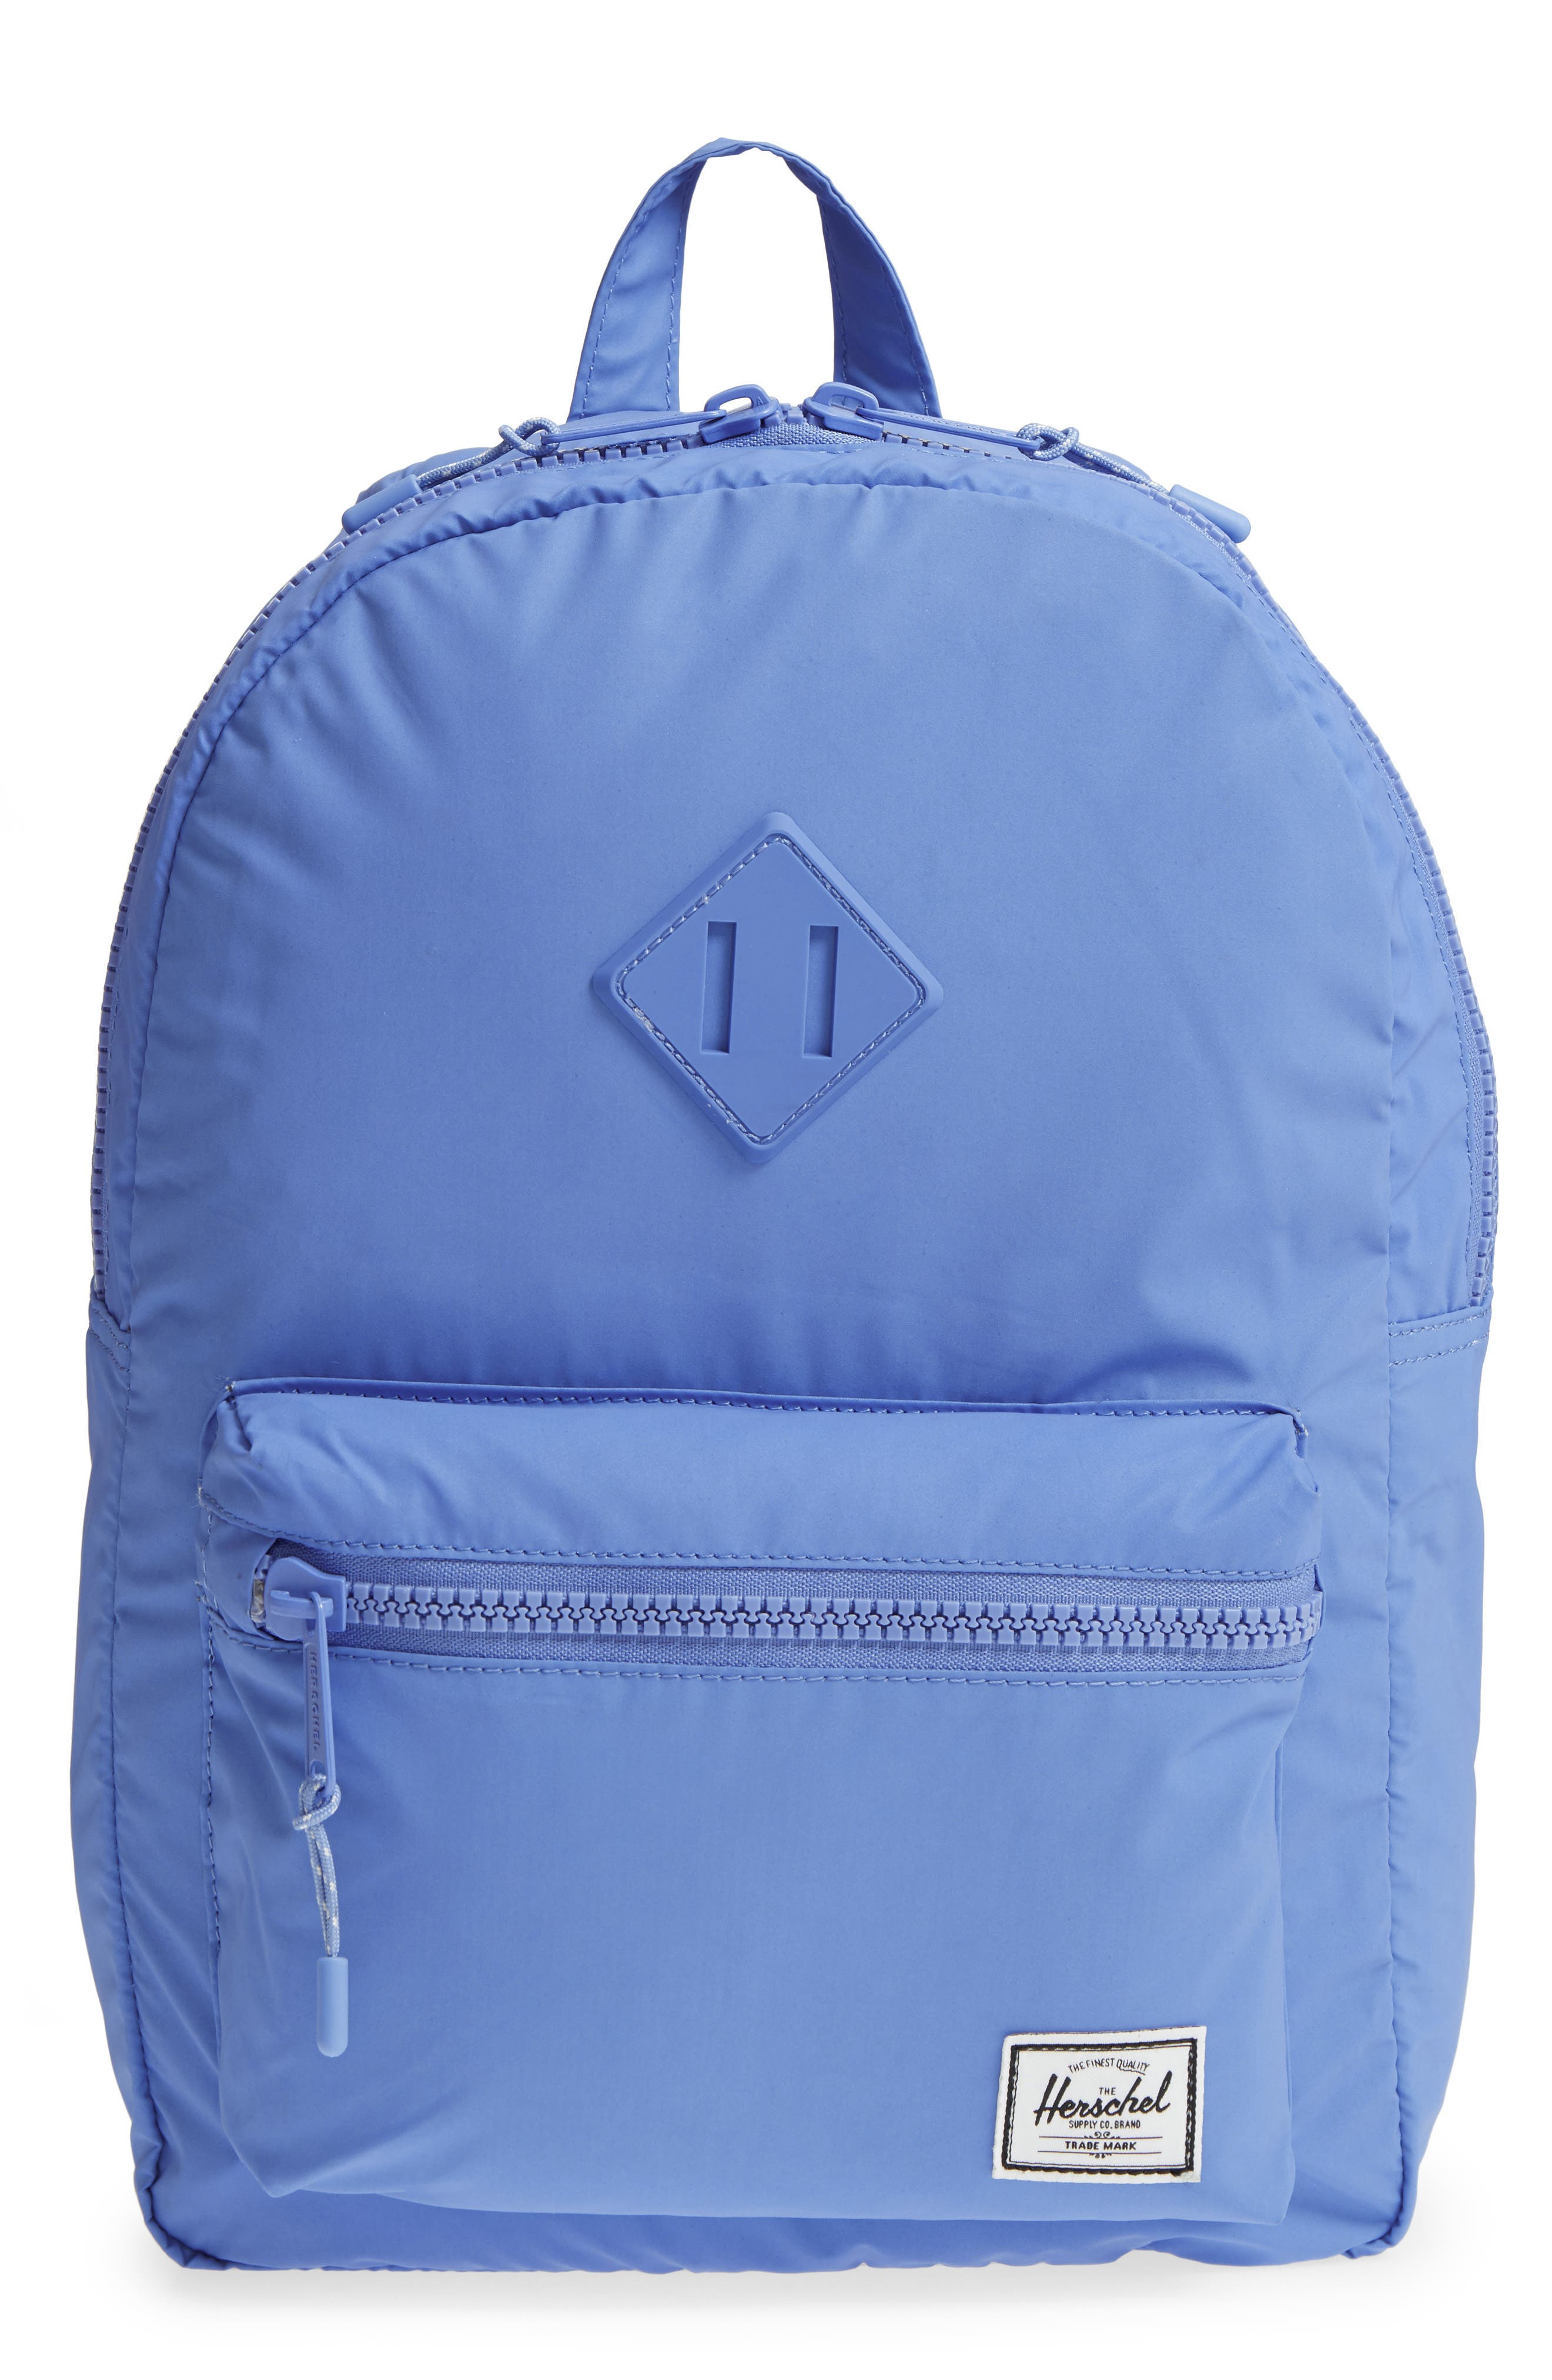 Heritage Backpack,                         Main,                         color, 400